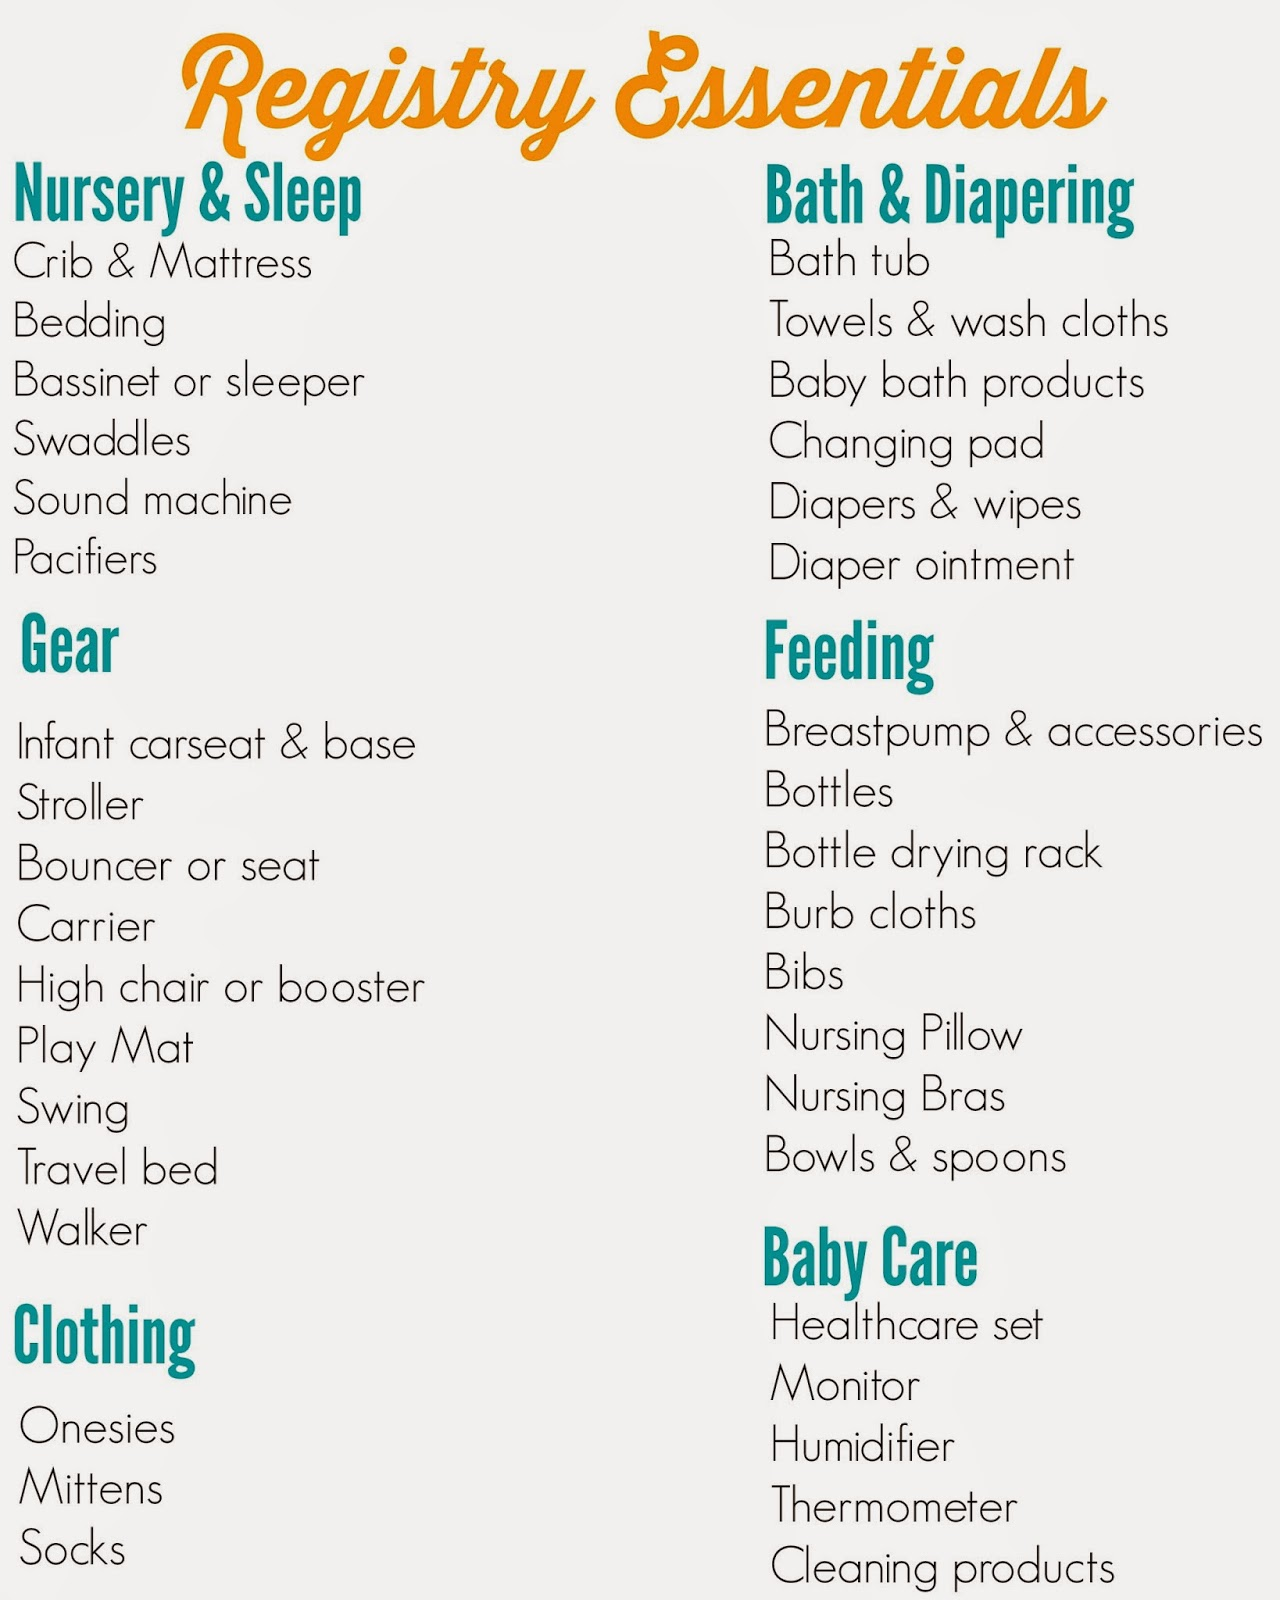 Baby Registry Checklist | The Ultimate Registry Checklist The Chirping Moms